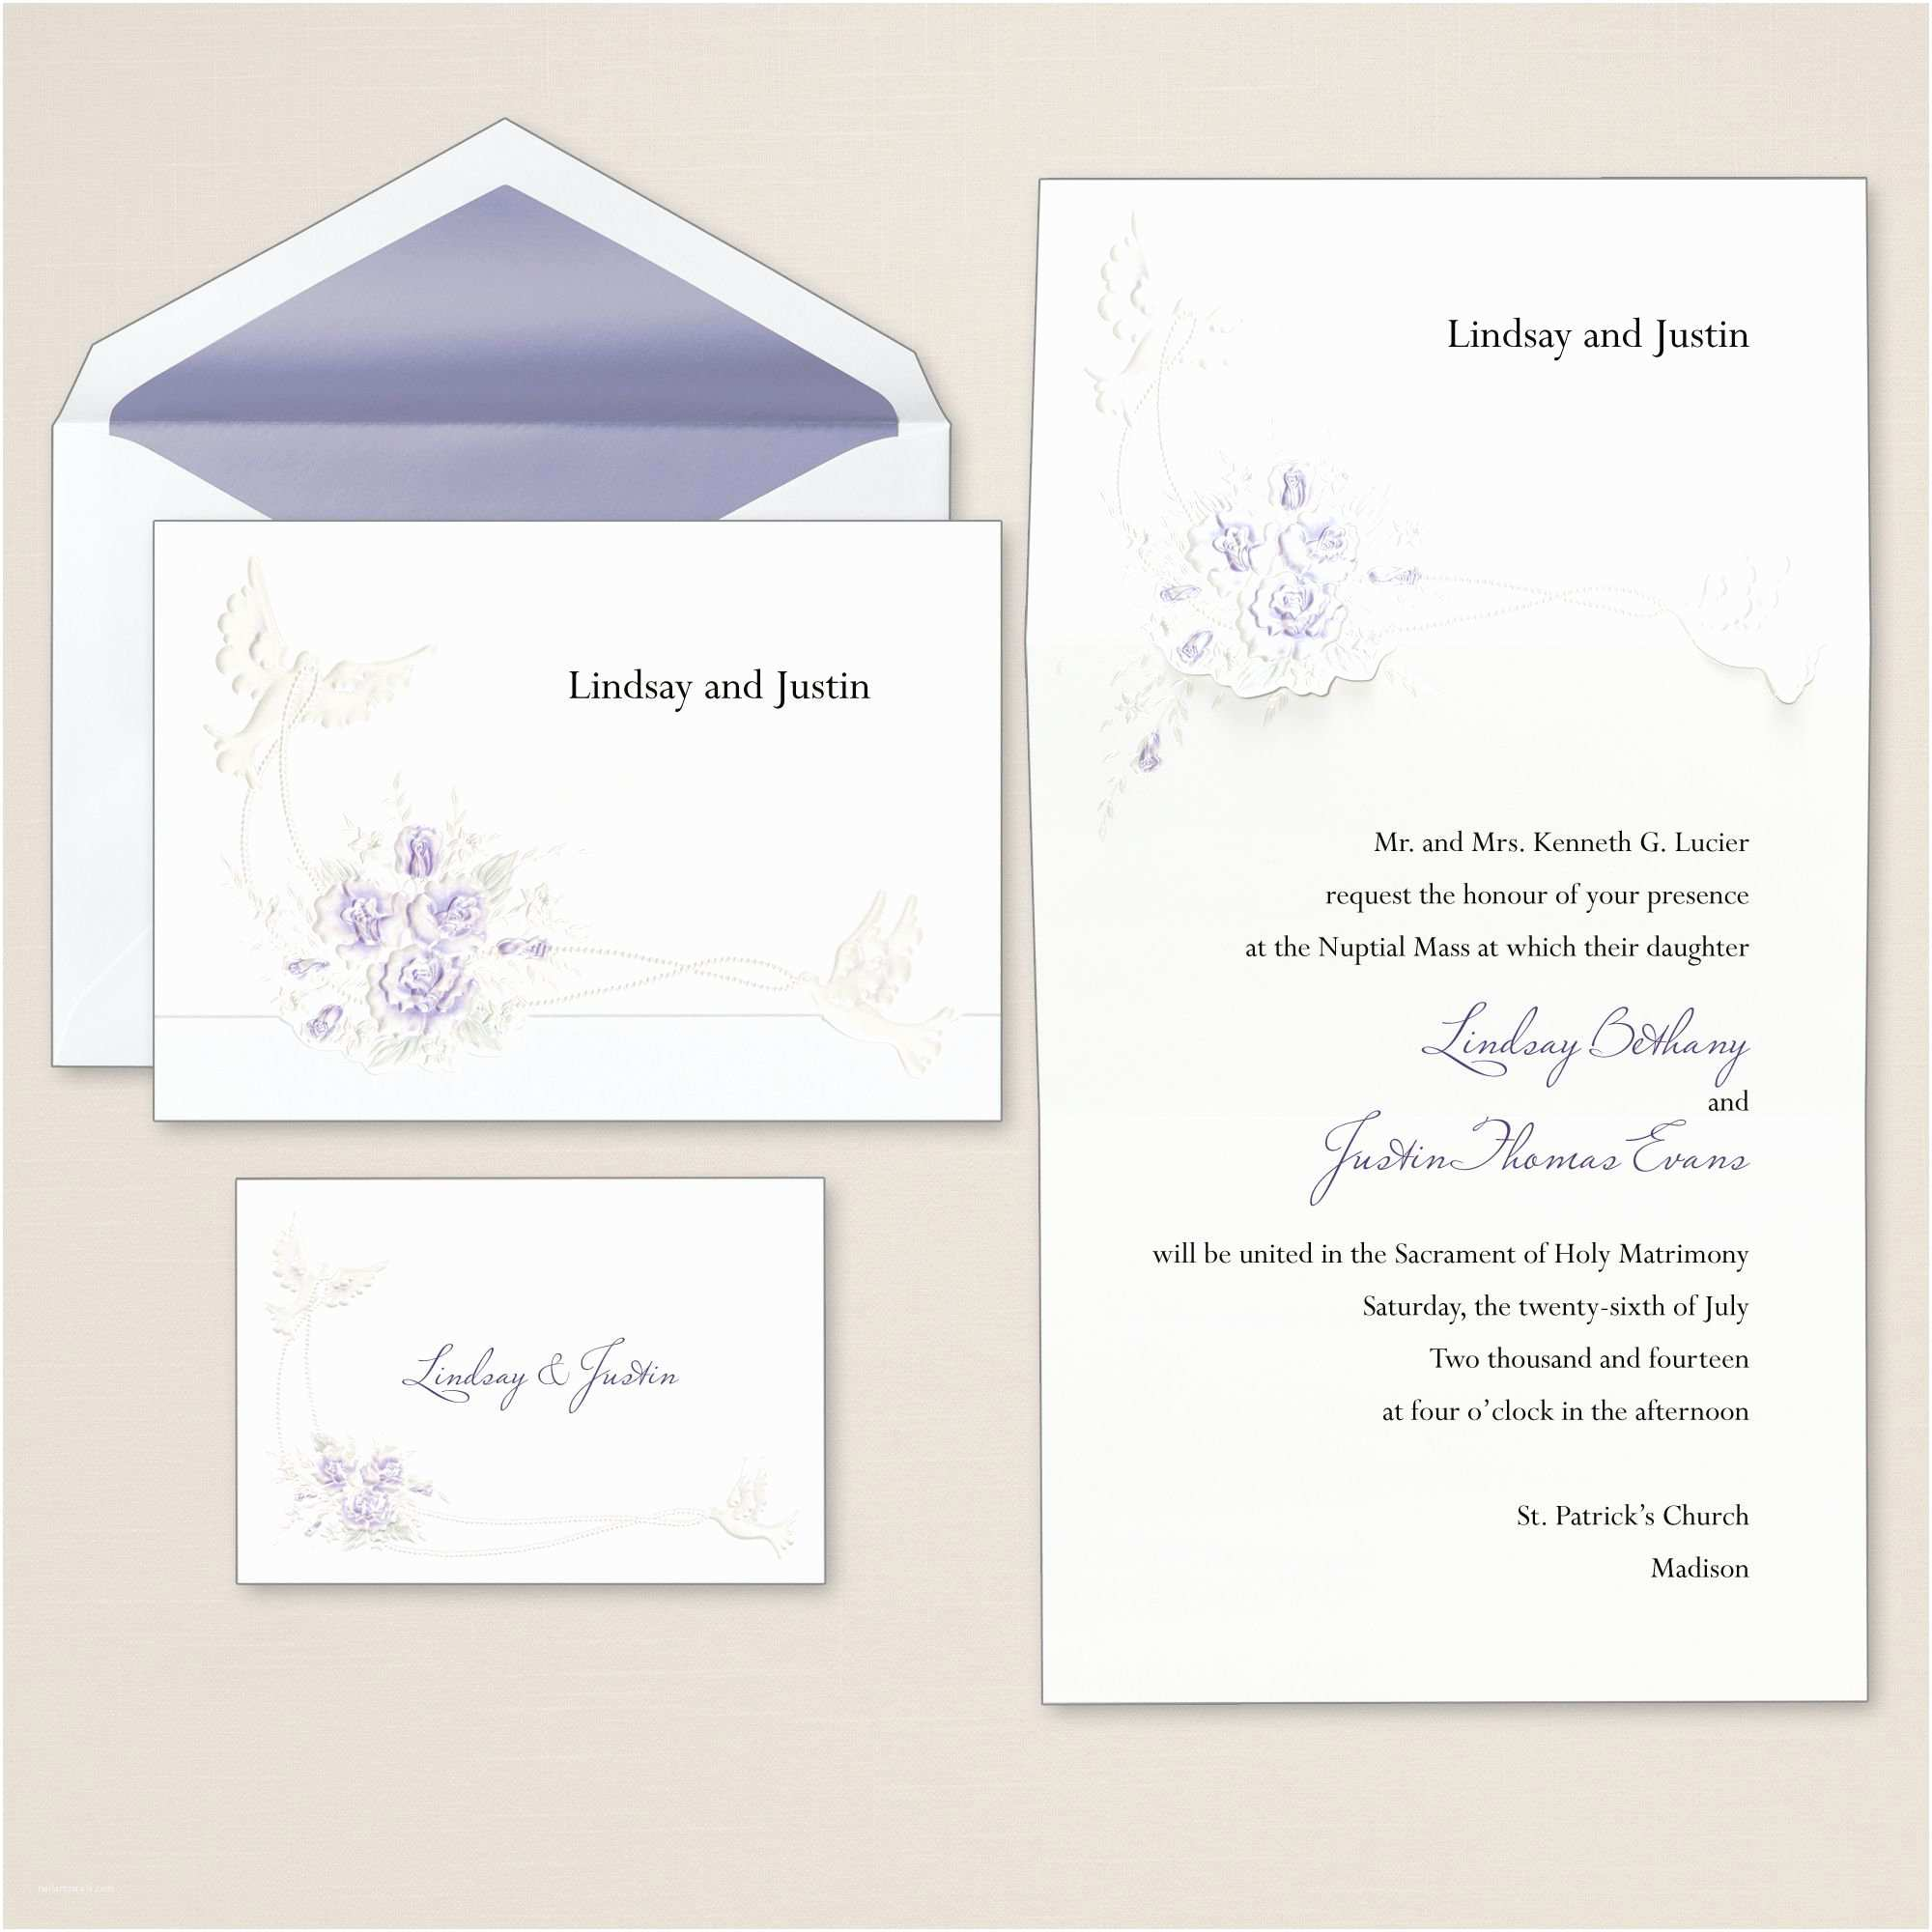 Wedding Reception Invitations Wedding Invitation Wedding Invitations Reply Cards New